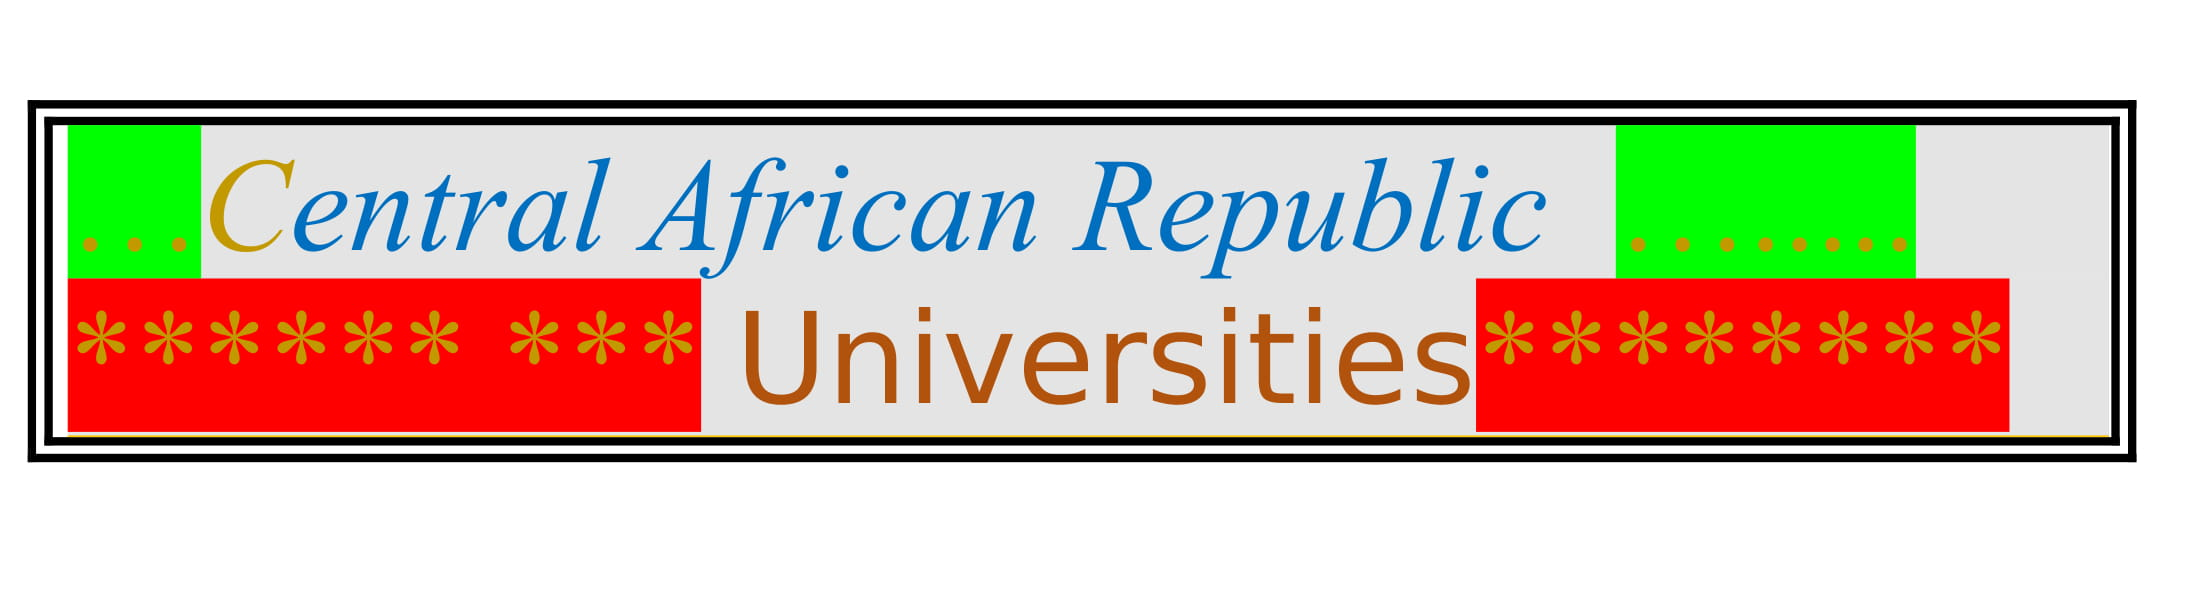 List of Universities in Central African Republic